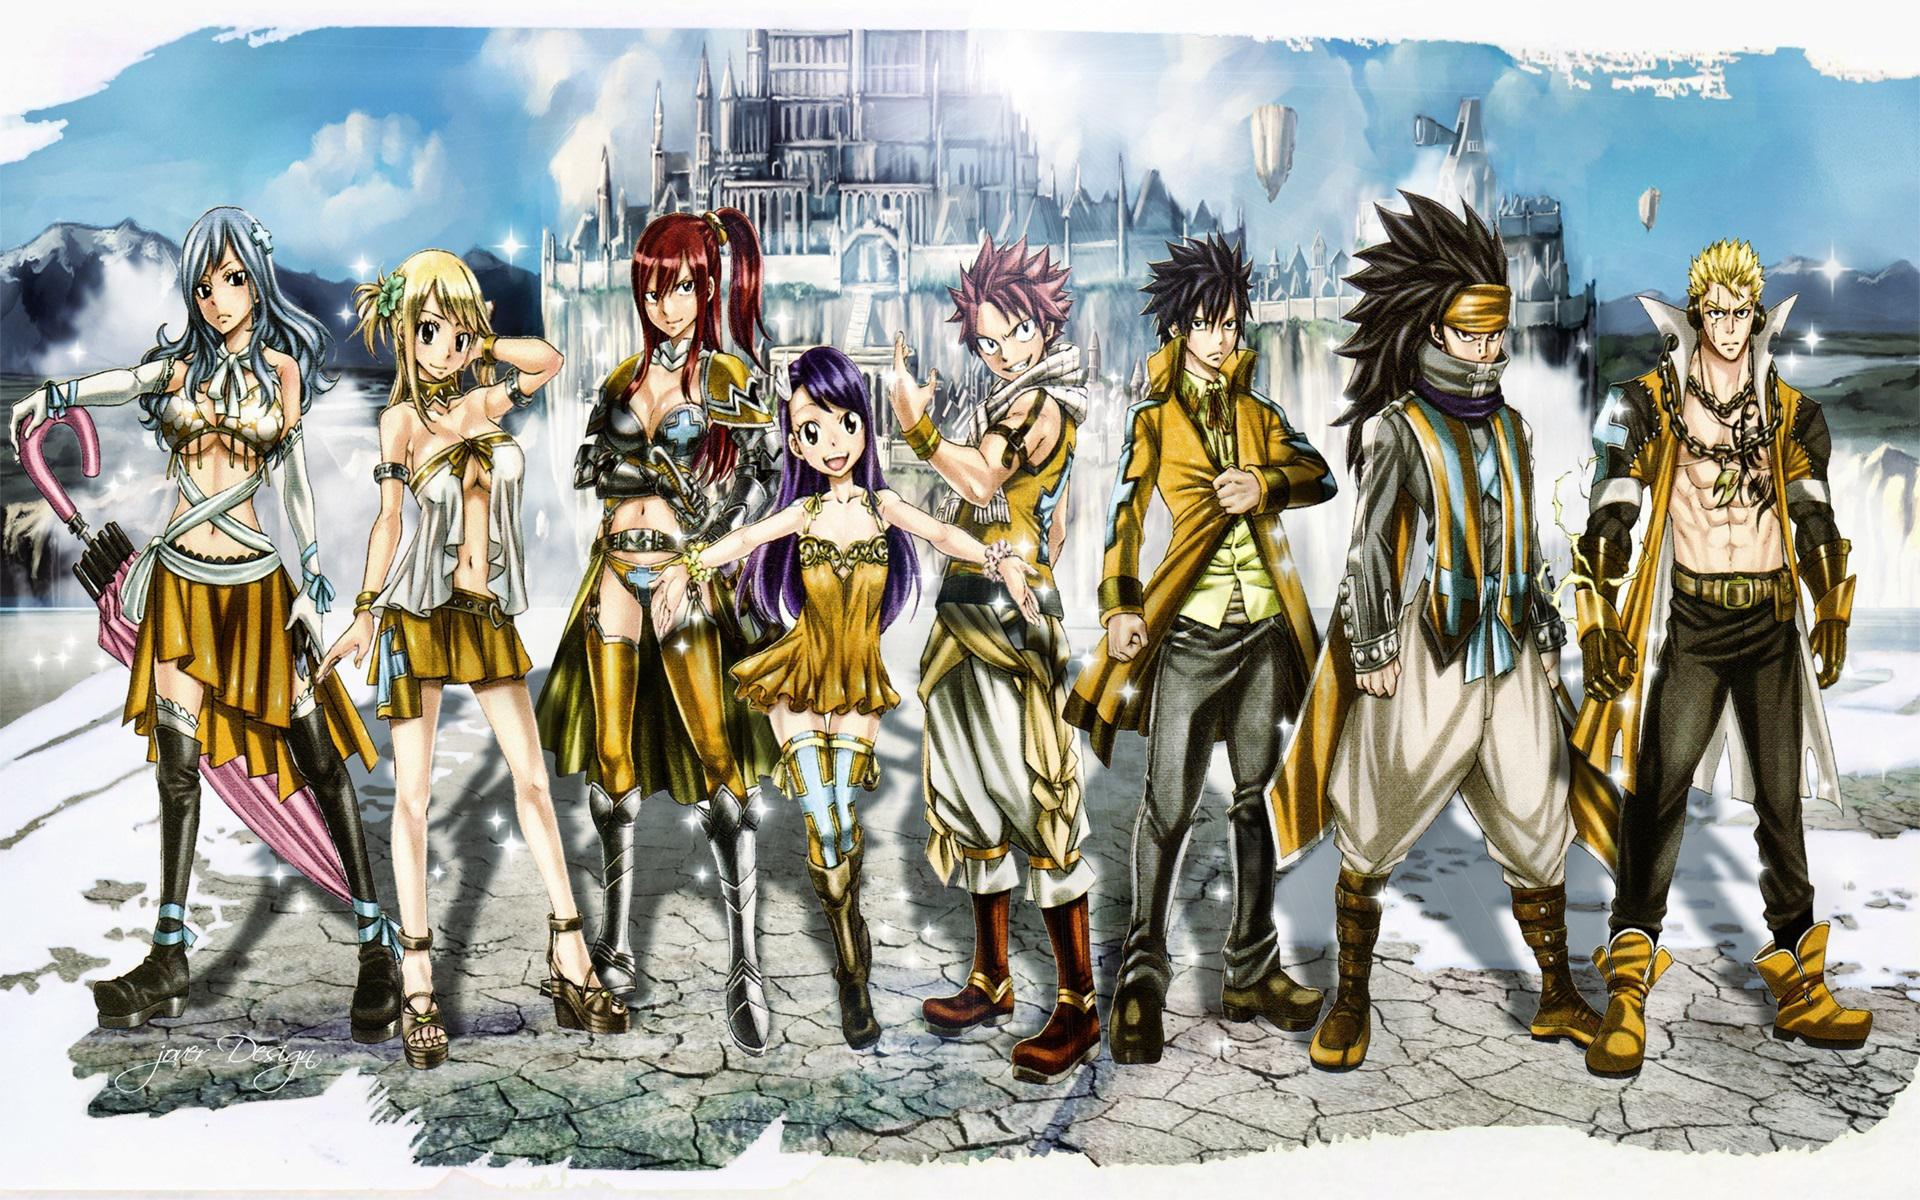 Hd Fairy Tail Wallpaper Posted By Sarah Tremblay